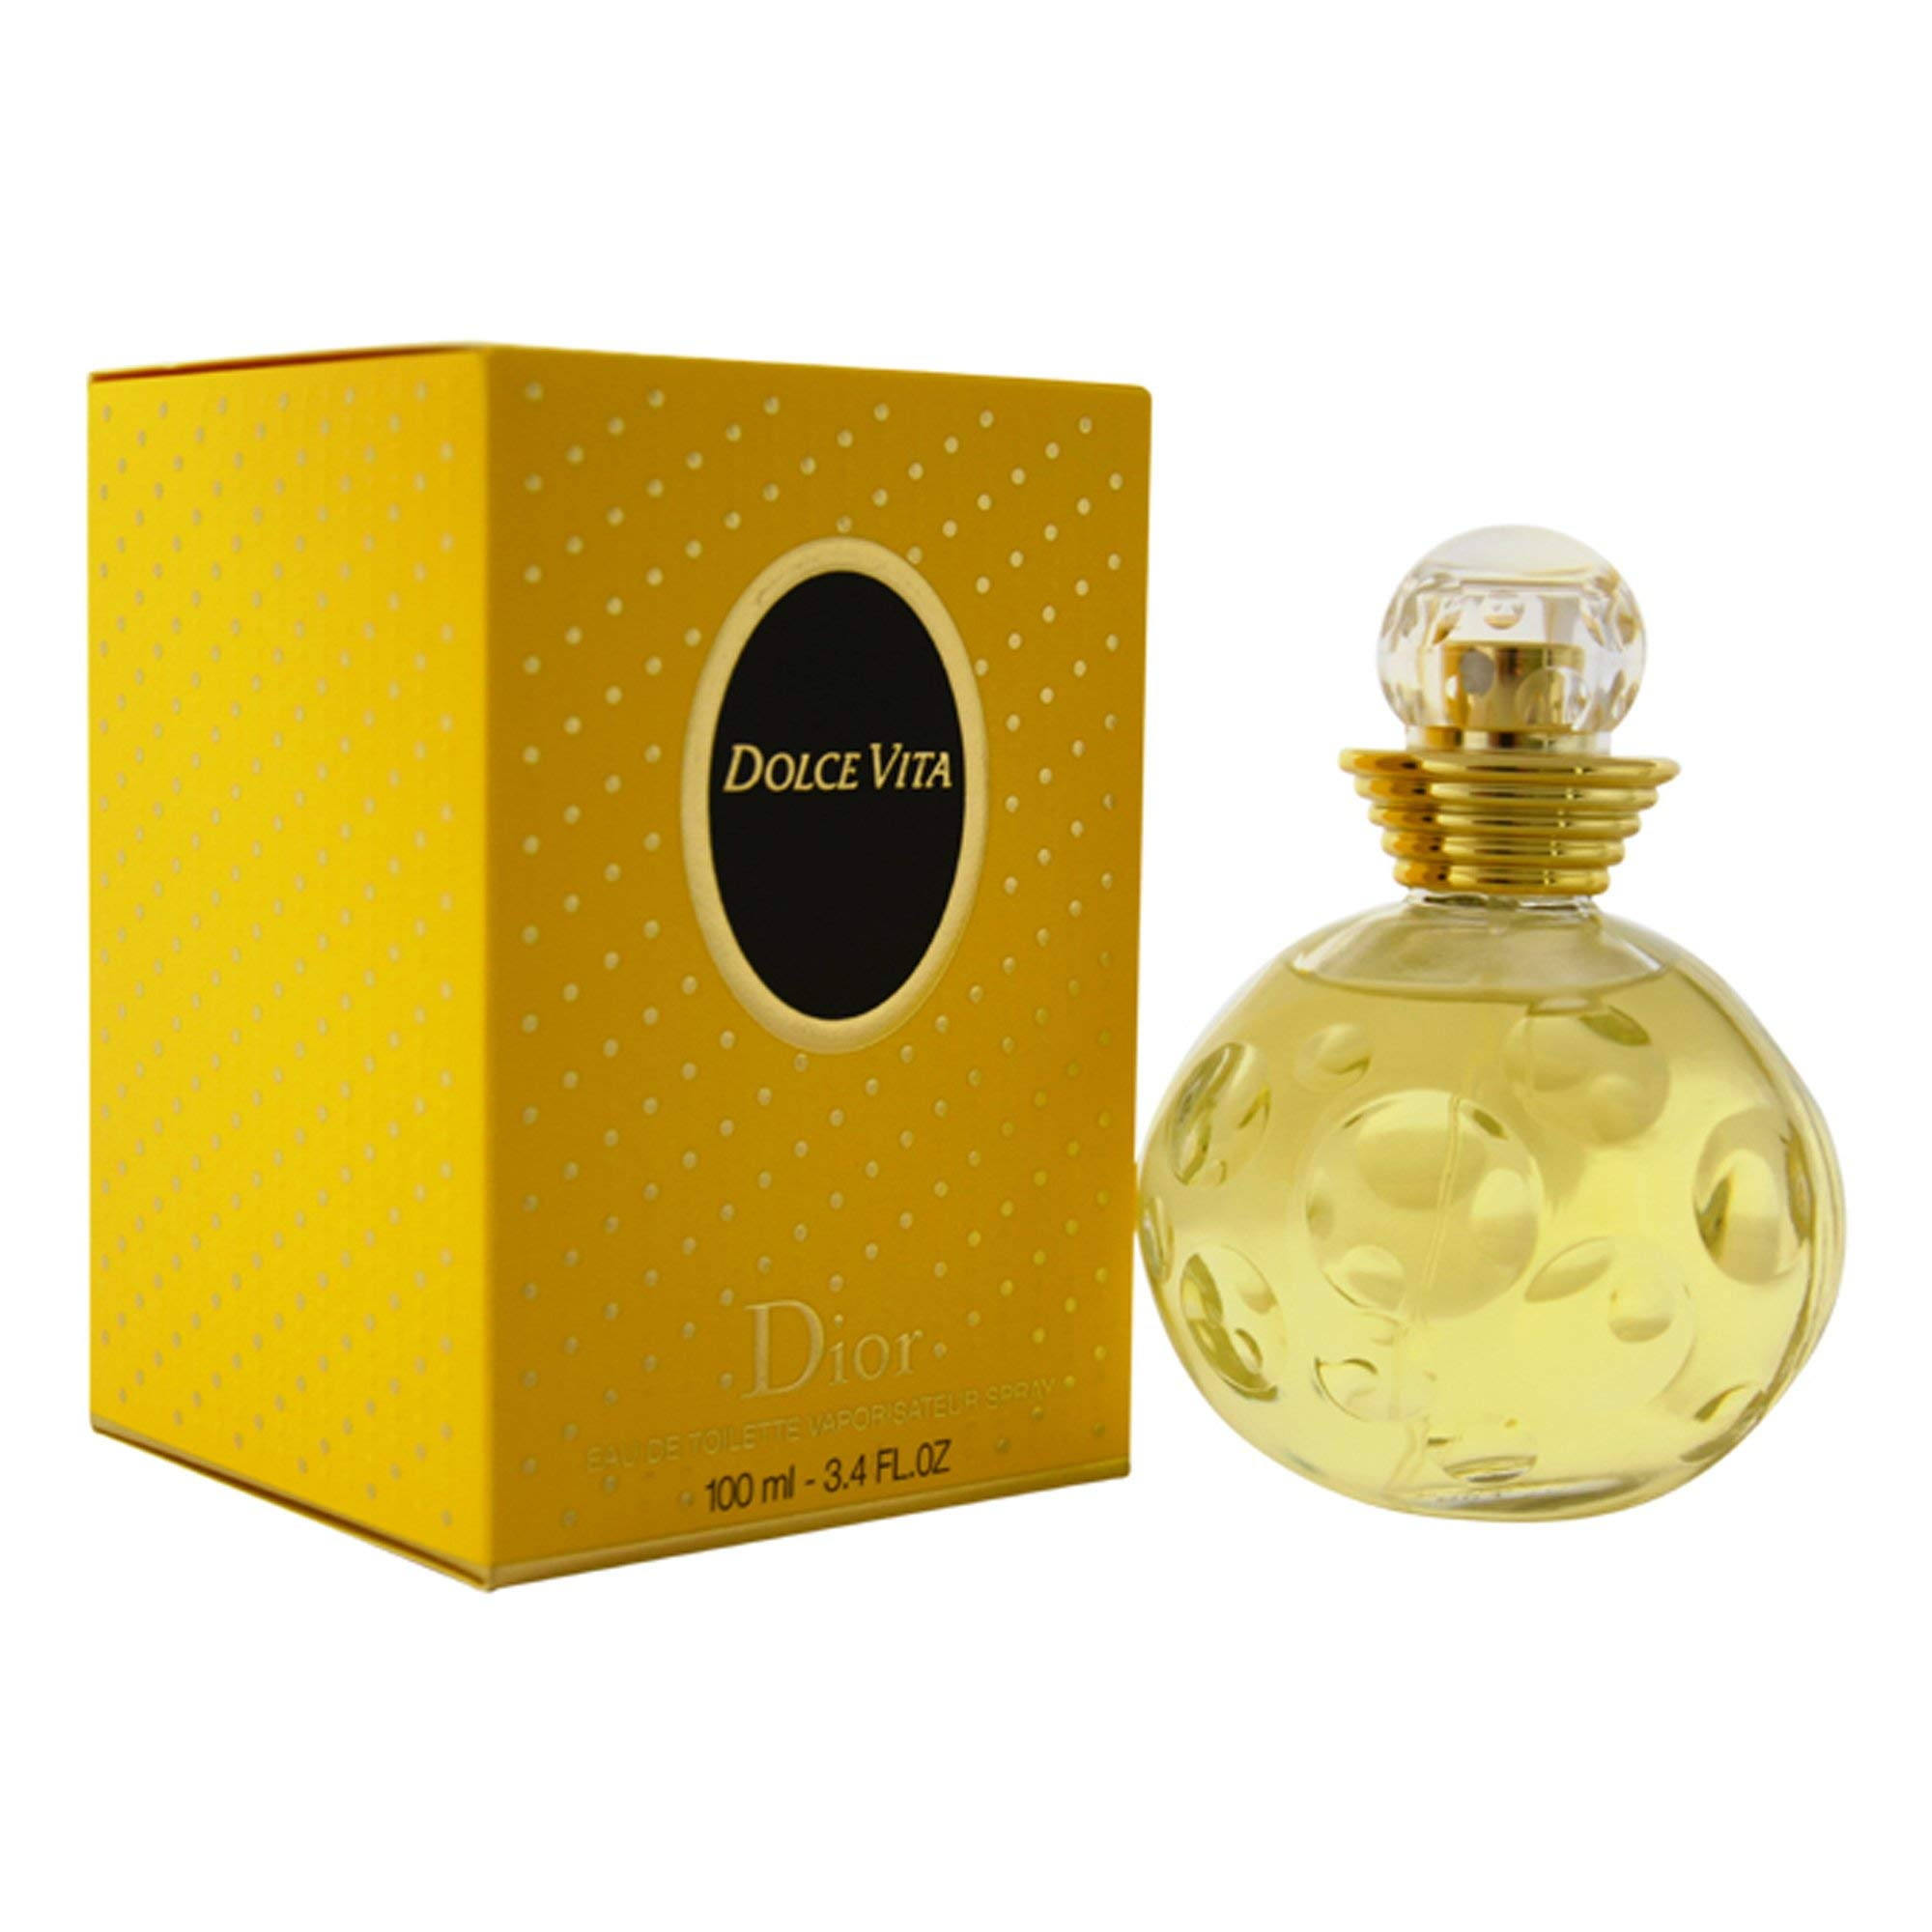 Dolce Vita By Christian Dior For Women. Eau De Toilette Spray 3.4 Oz.